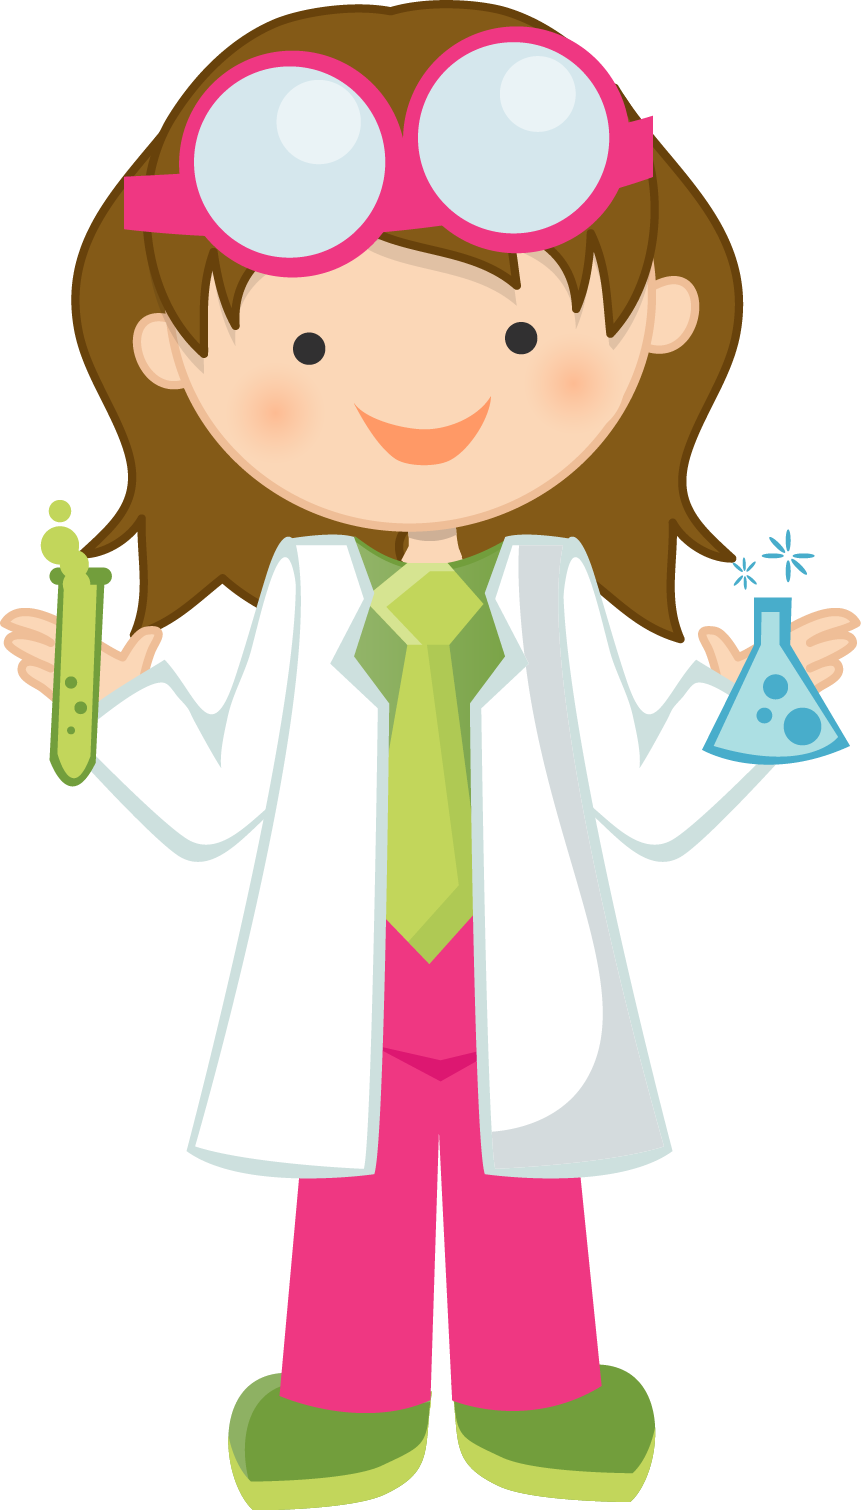 Girl Scientist Free Clipart | Science Fun | Pinterest ...